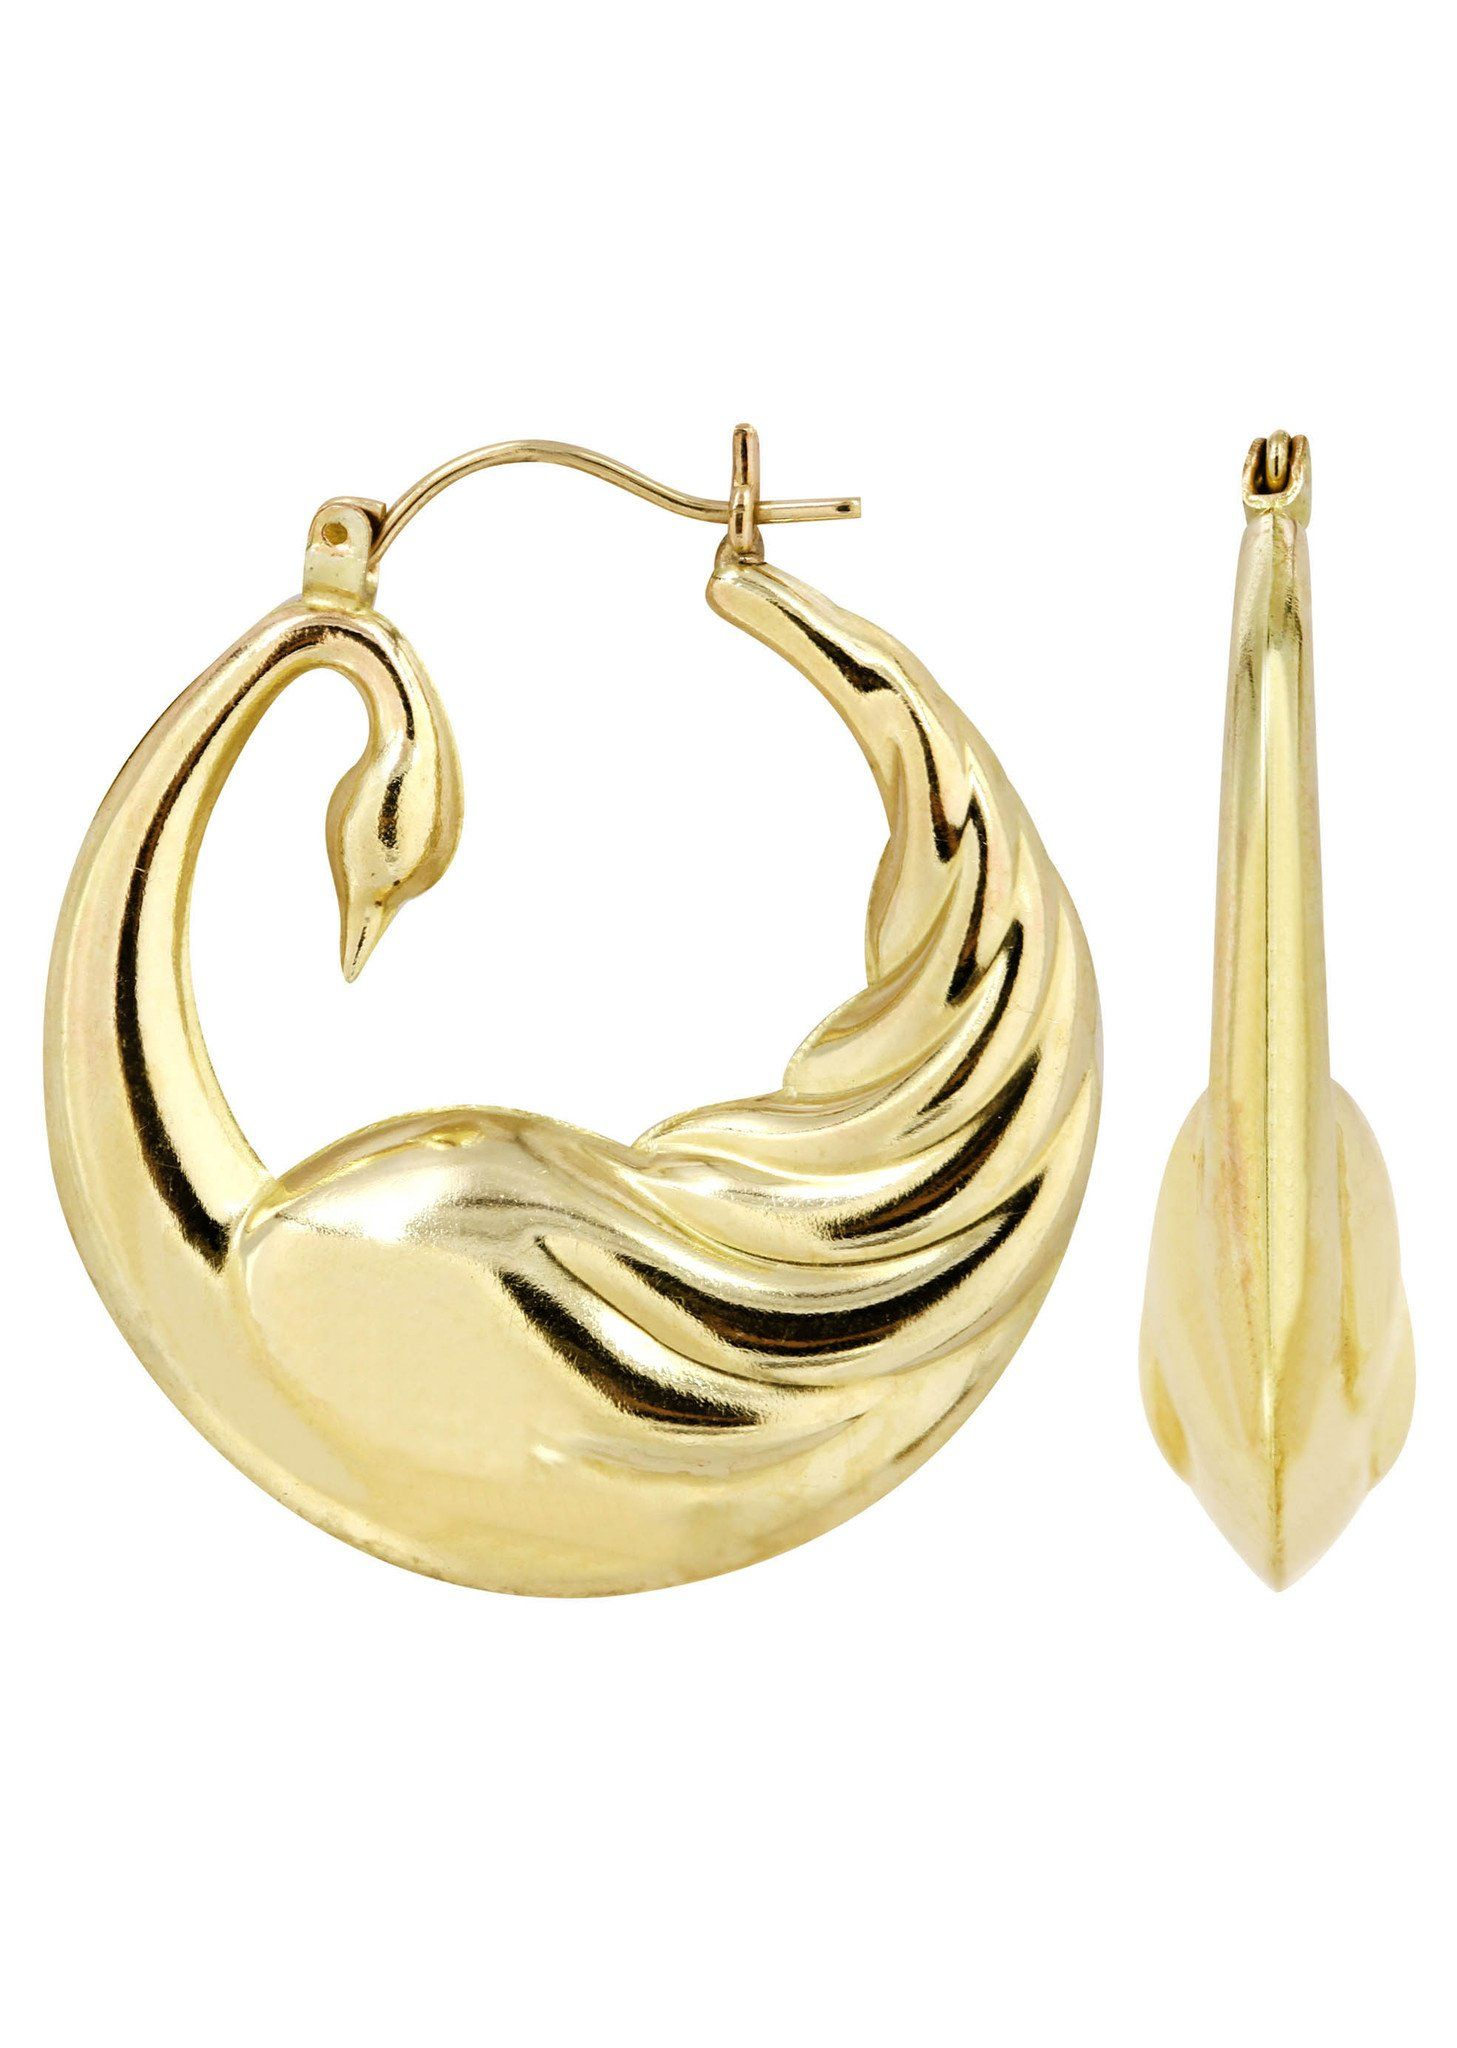 10K Gold Swan Hoop Earrings